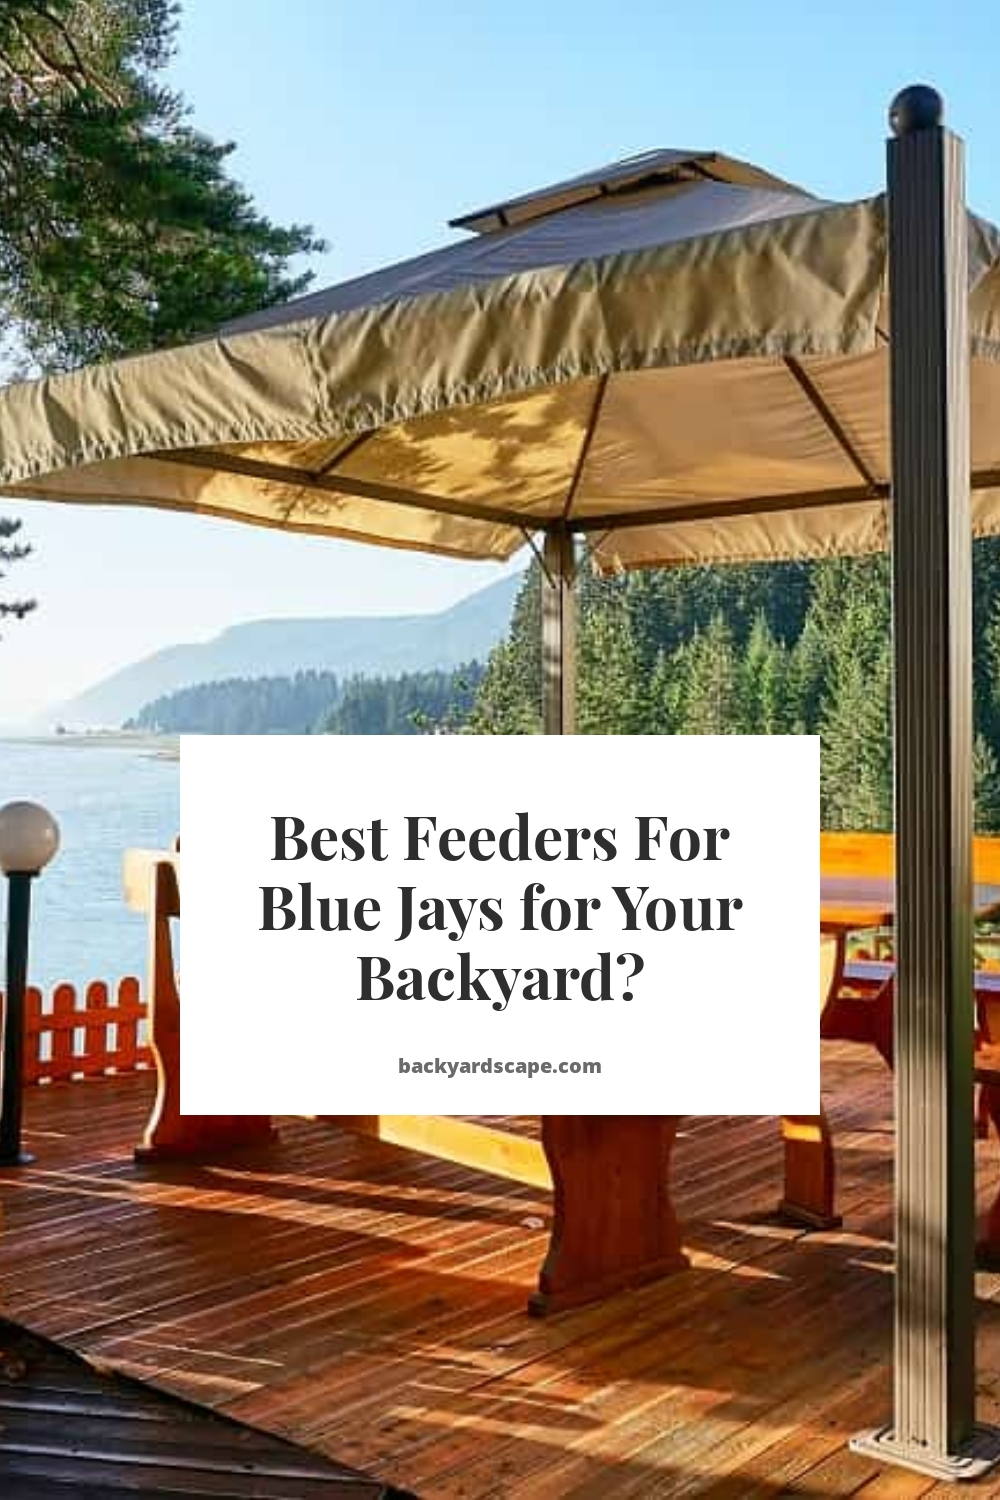 Best Feeders For Blue Jays for Your Backyard?